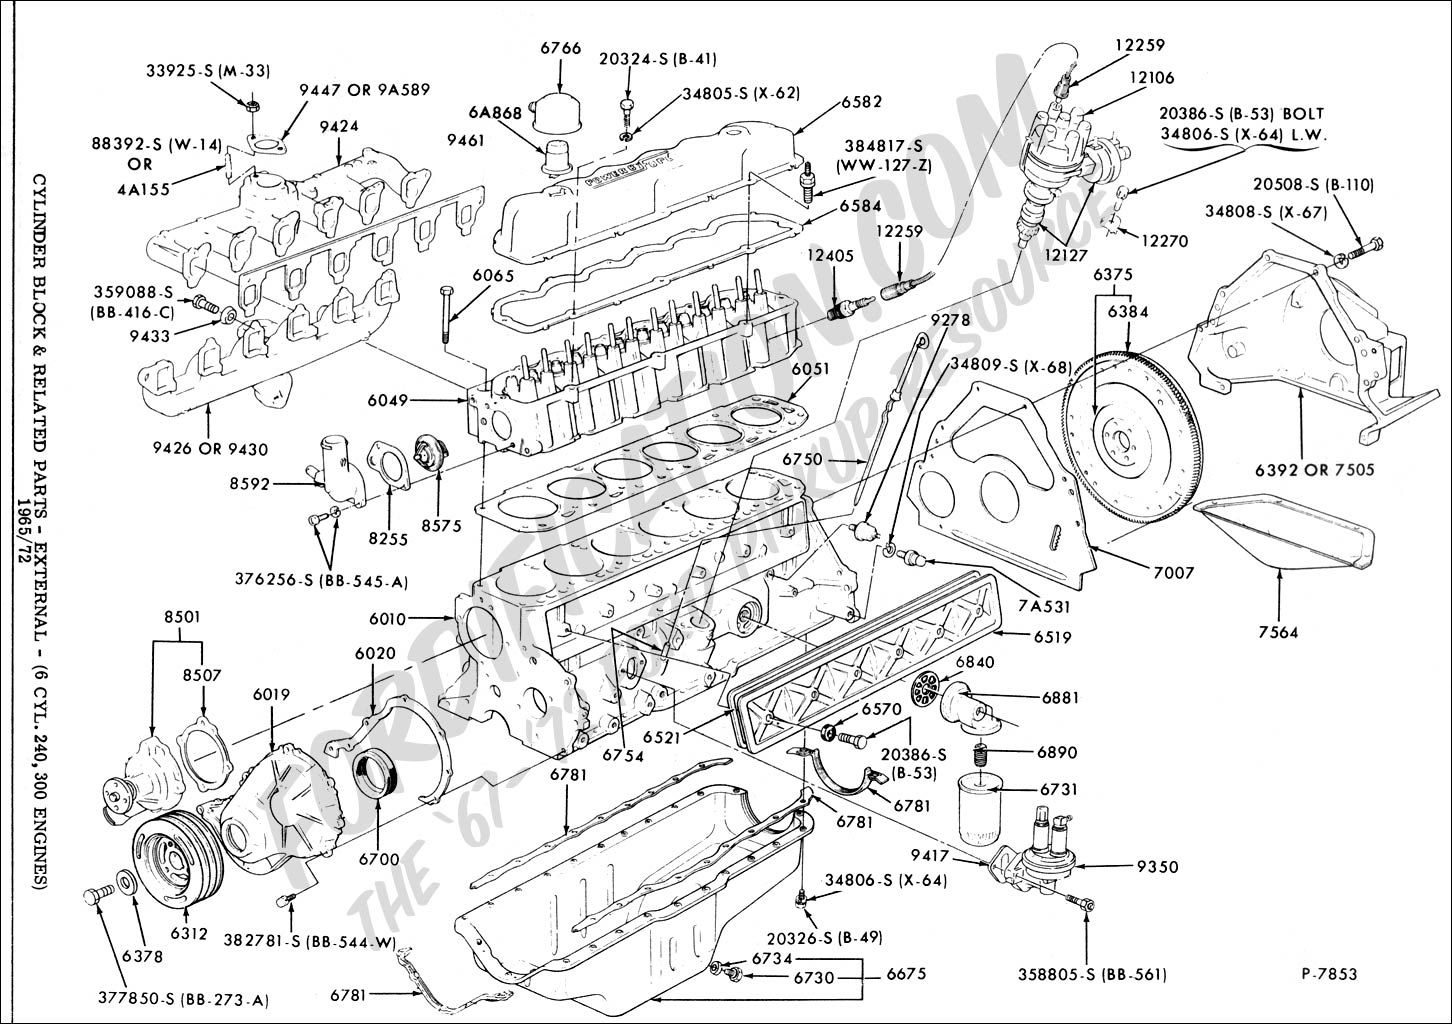 272 ford engine diagram wiring diagram toolbox ford 272 timing marks diagram [ 1452 x 1024 Pixel ]